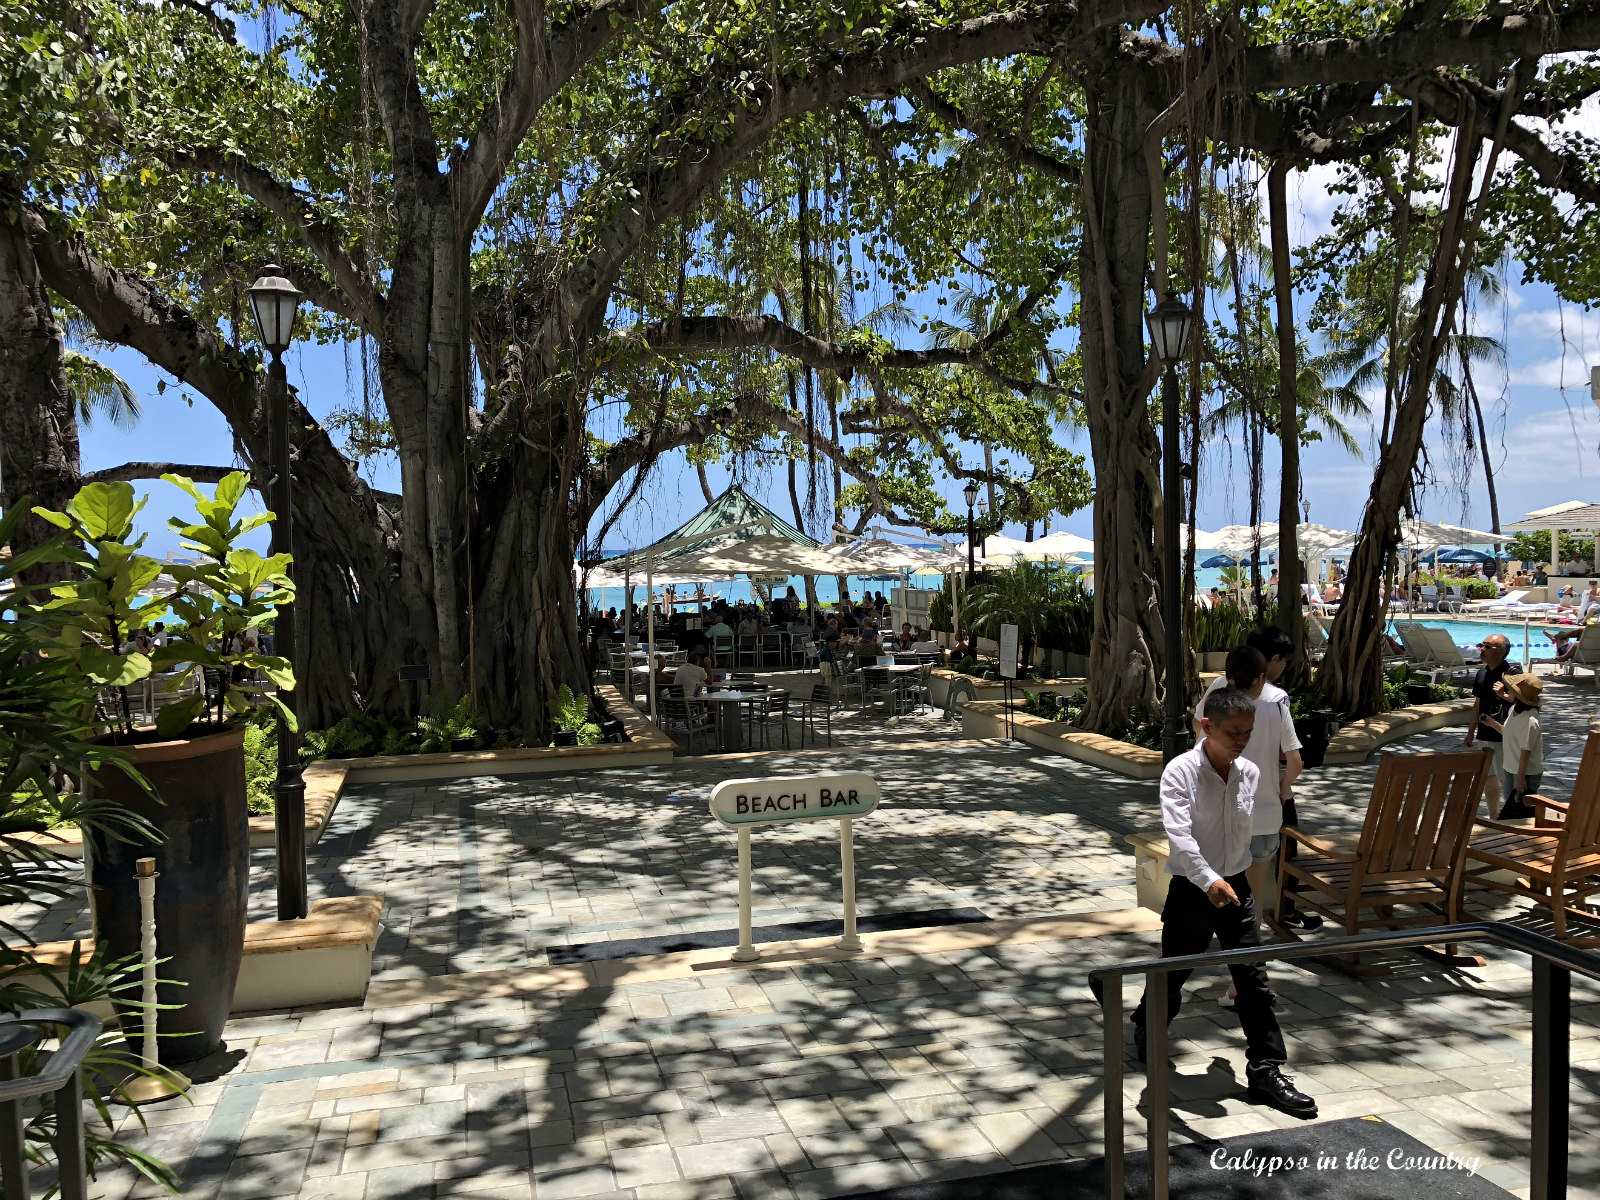 Beach Bar at the Moana Surfrider